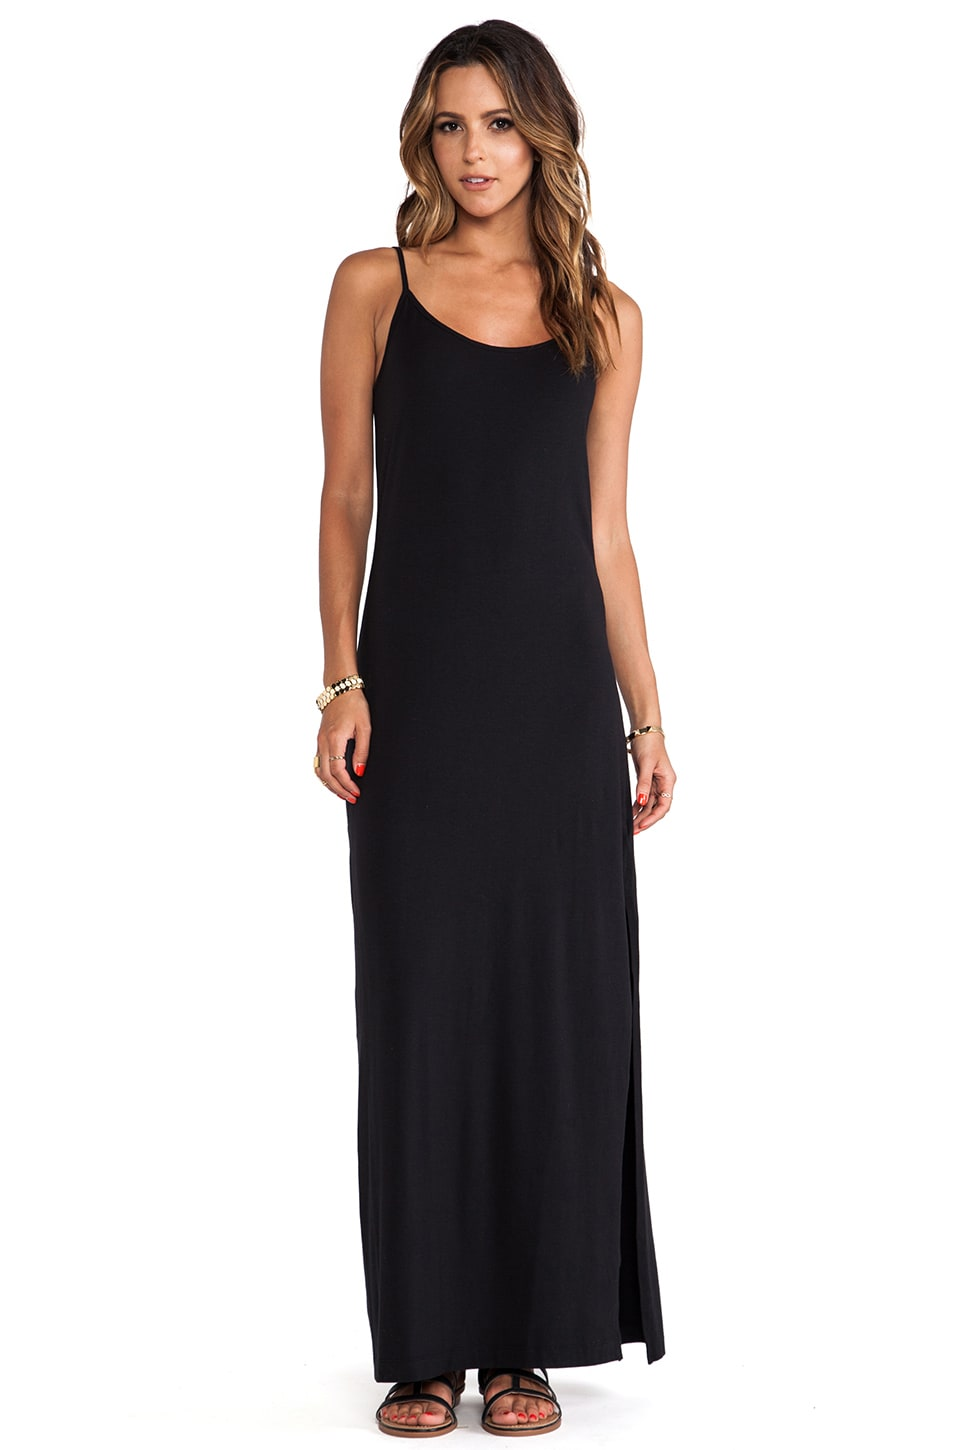 Splendid Splenid Maxi Dress in Black